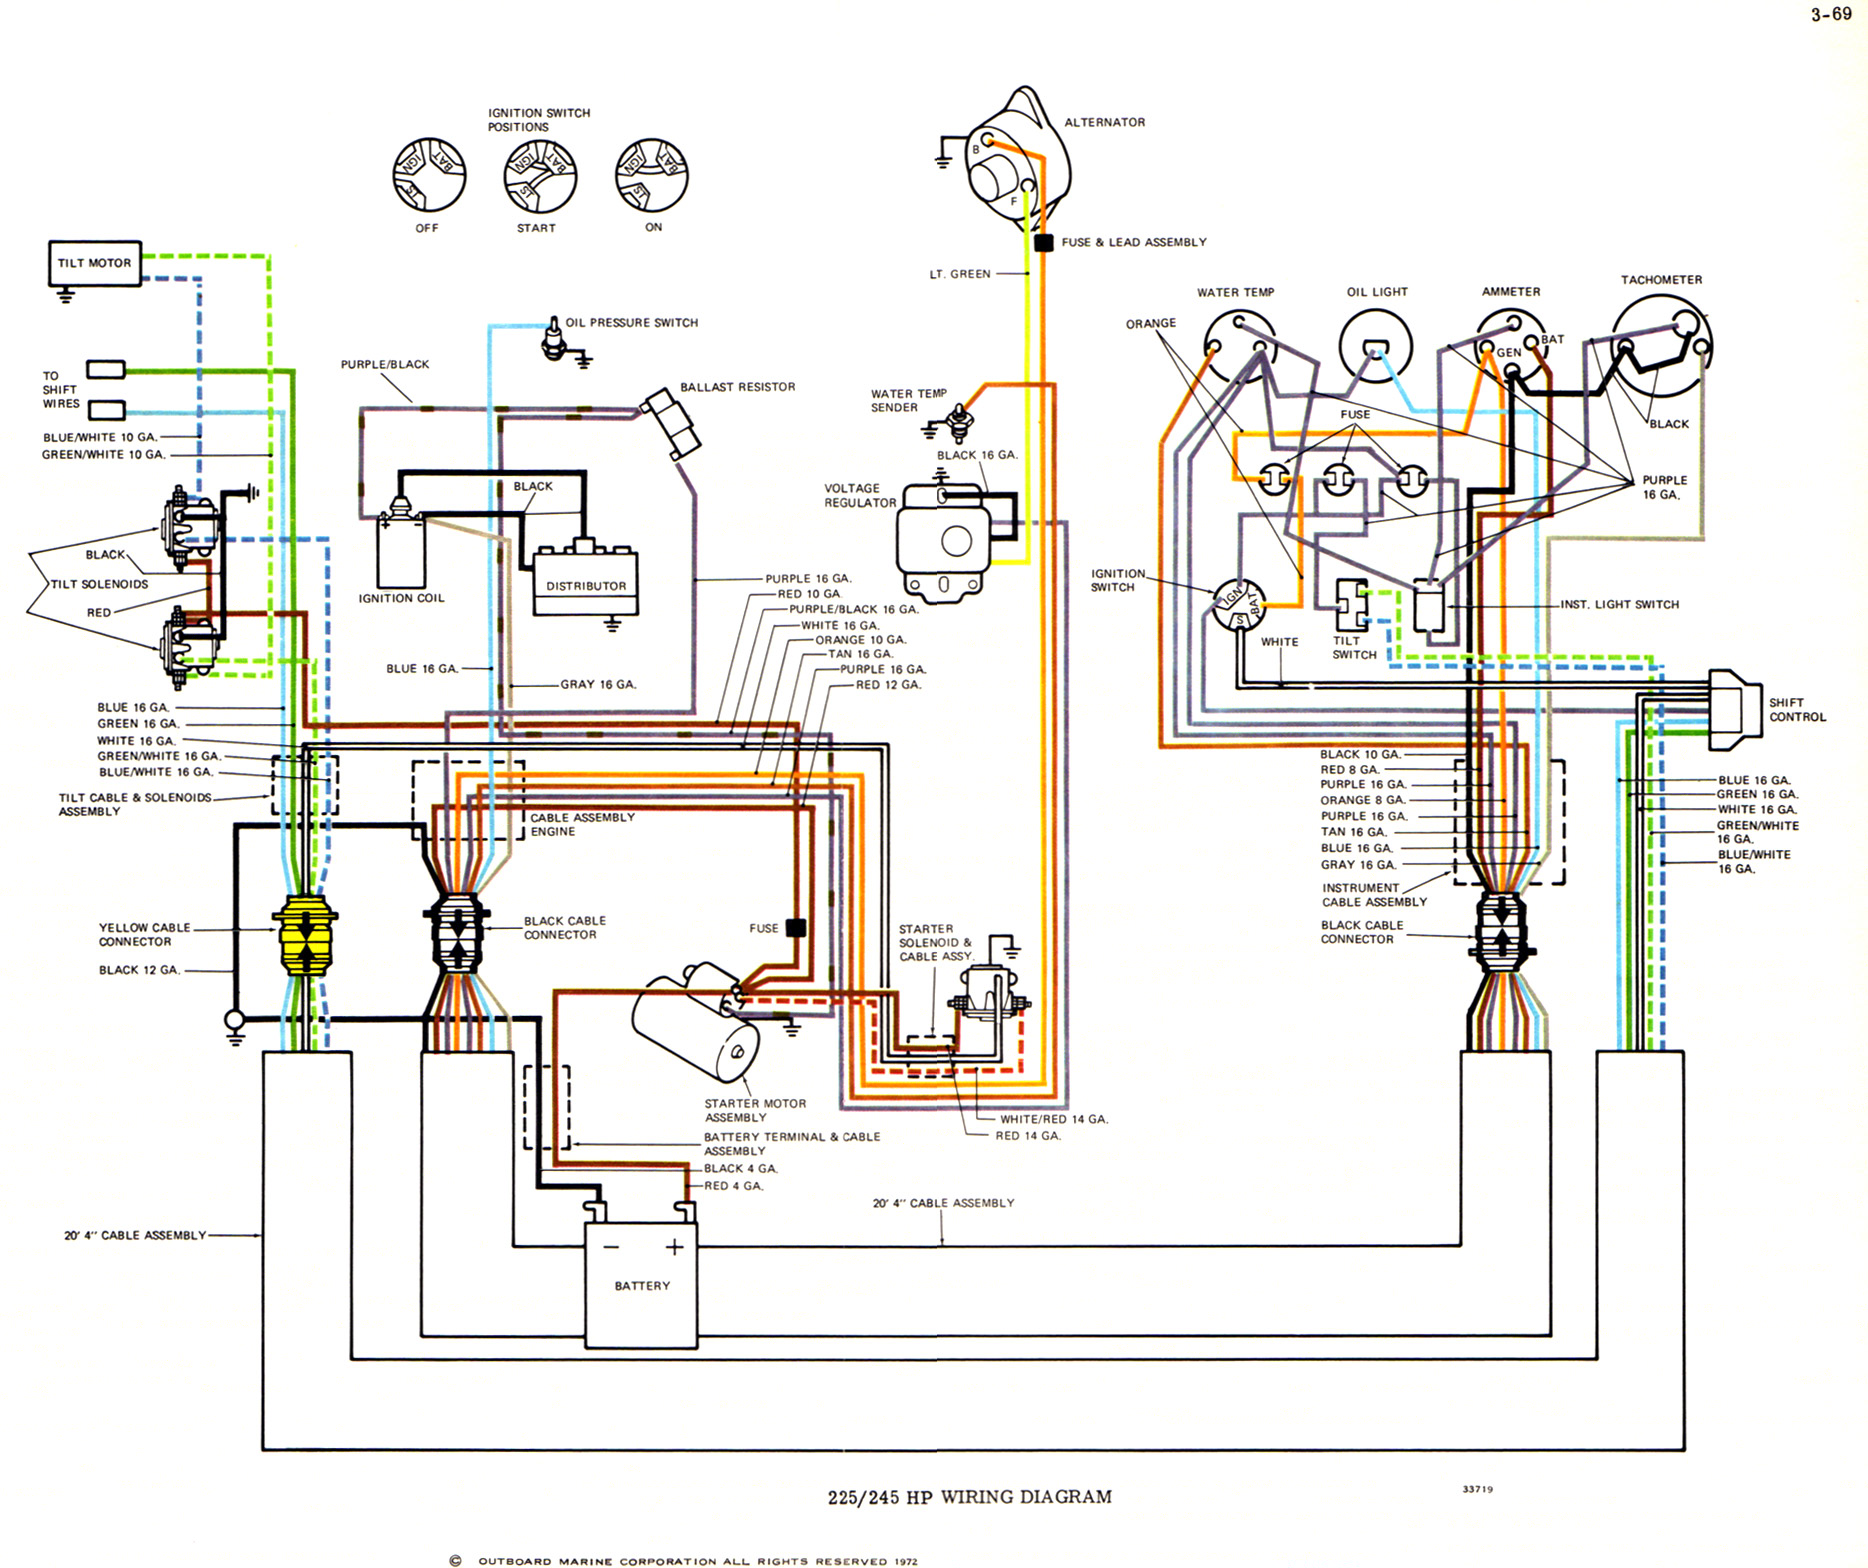 50 Hp Johnson Outboard Wiring Diagram Pdf from www.hhscott.com